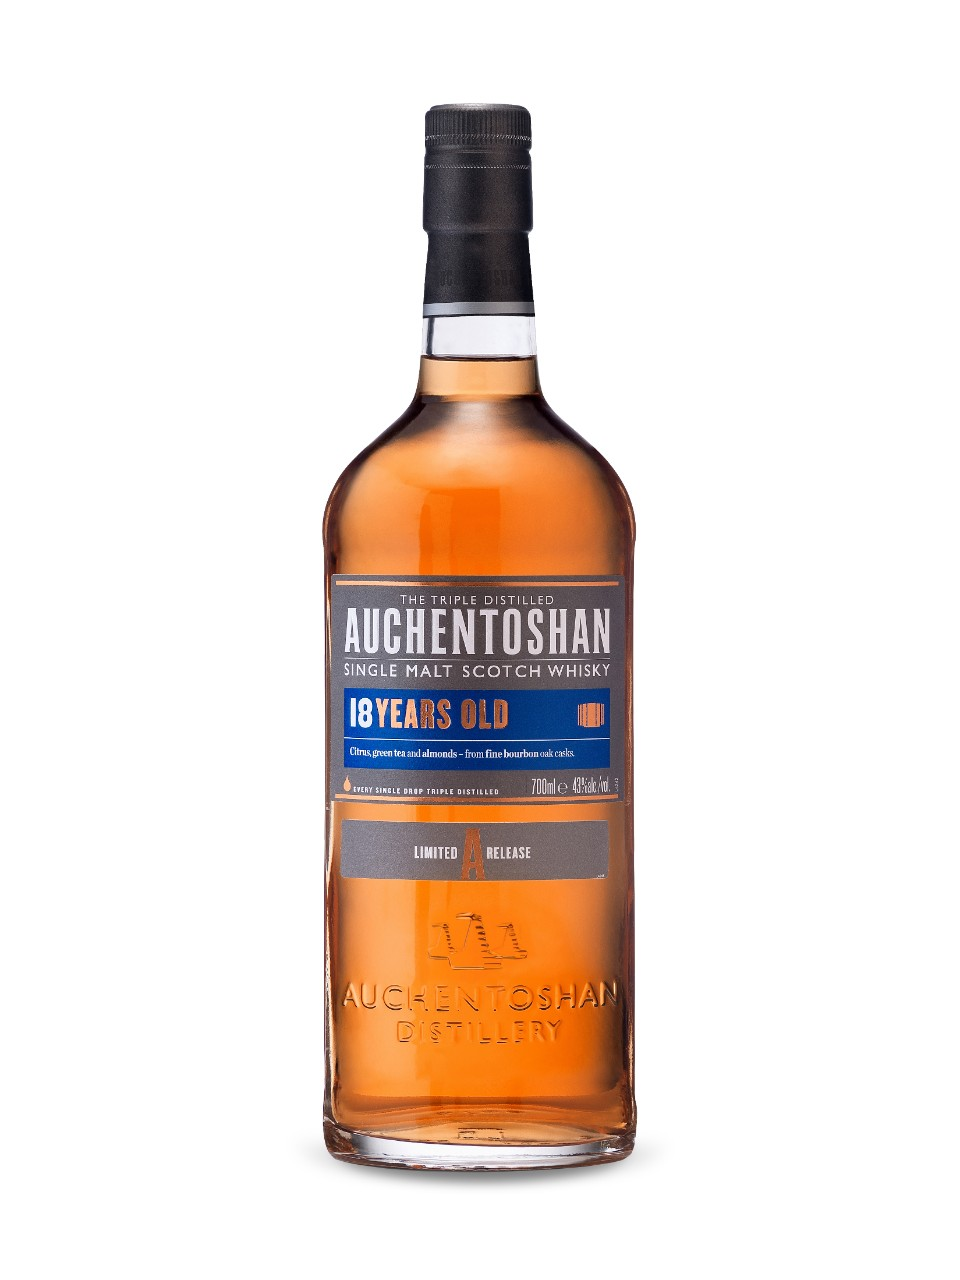 Auchentoshan 18 Year Old Lowland Single Malt Scotch Whisky from LCBO